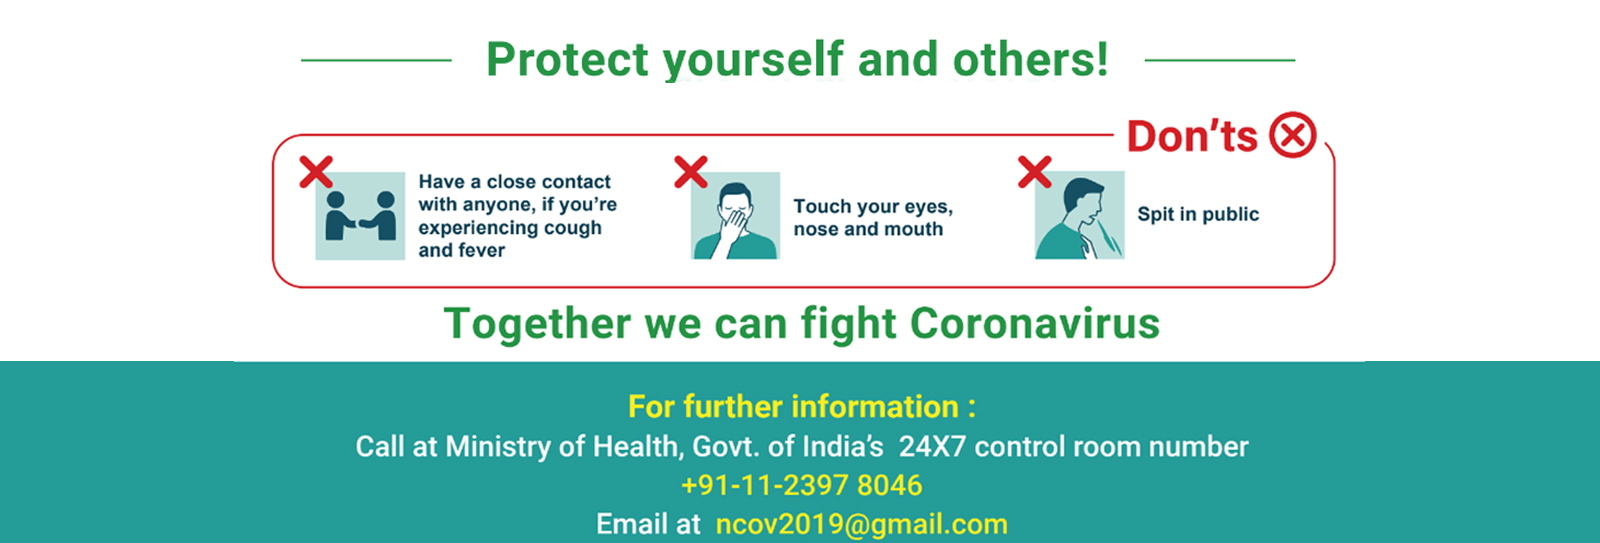 Click on the image link to get Advisory regarding NOVEL CORONA VIRUS